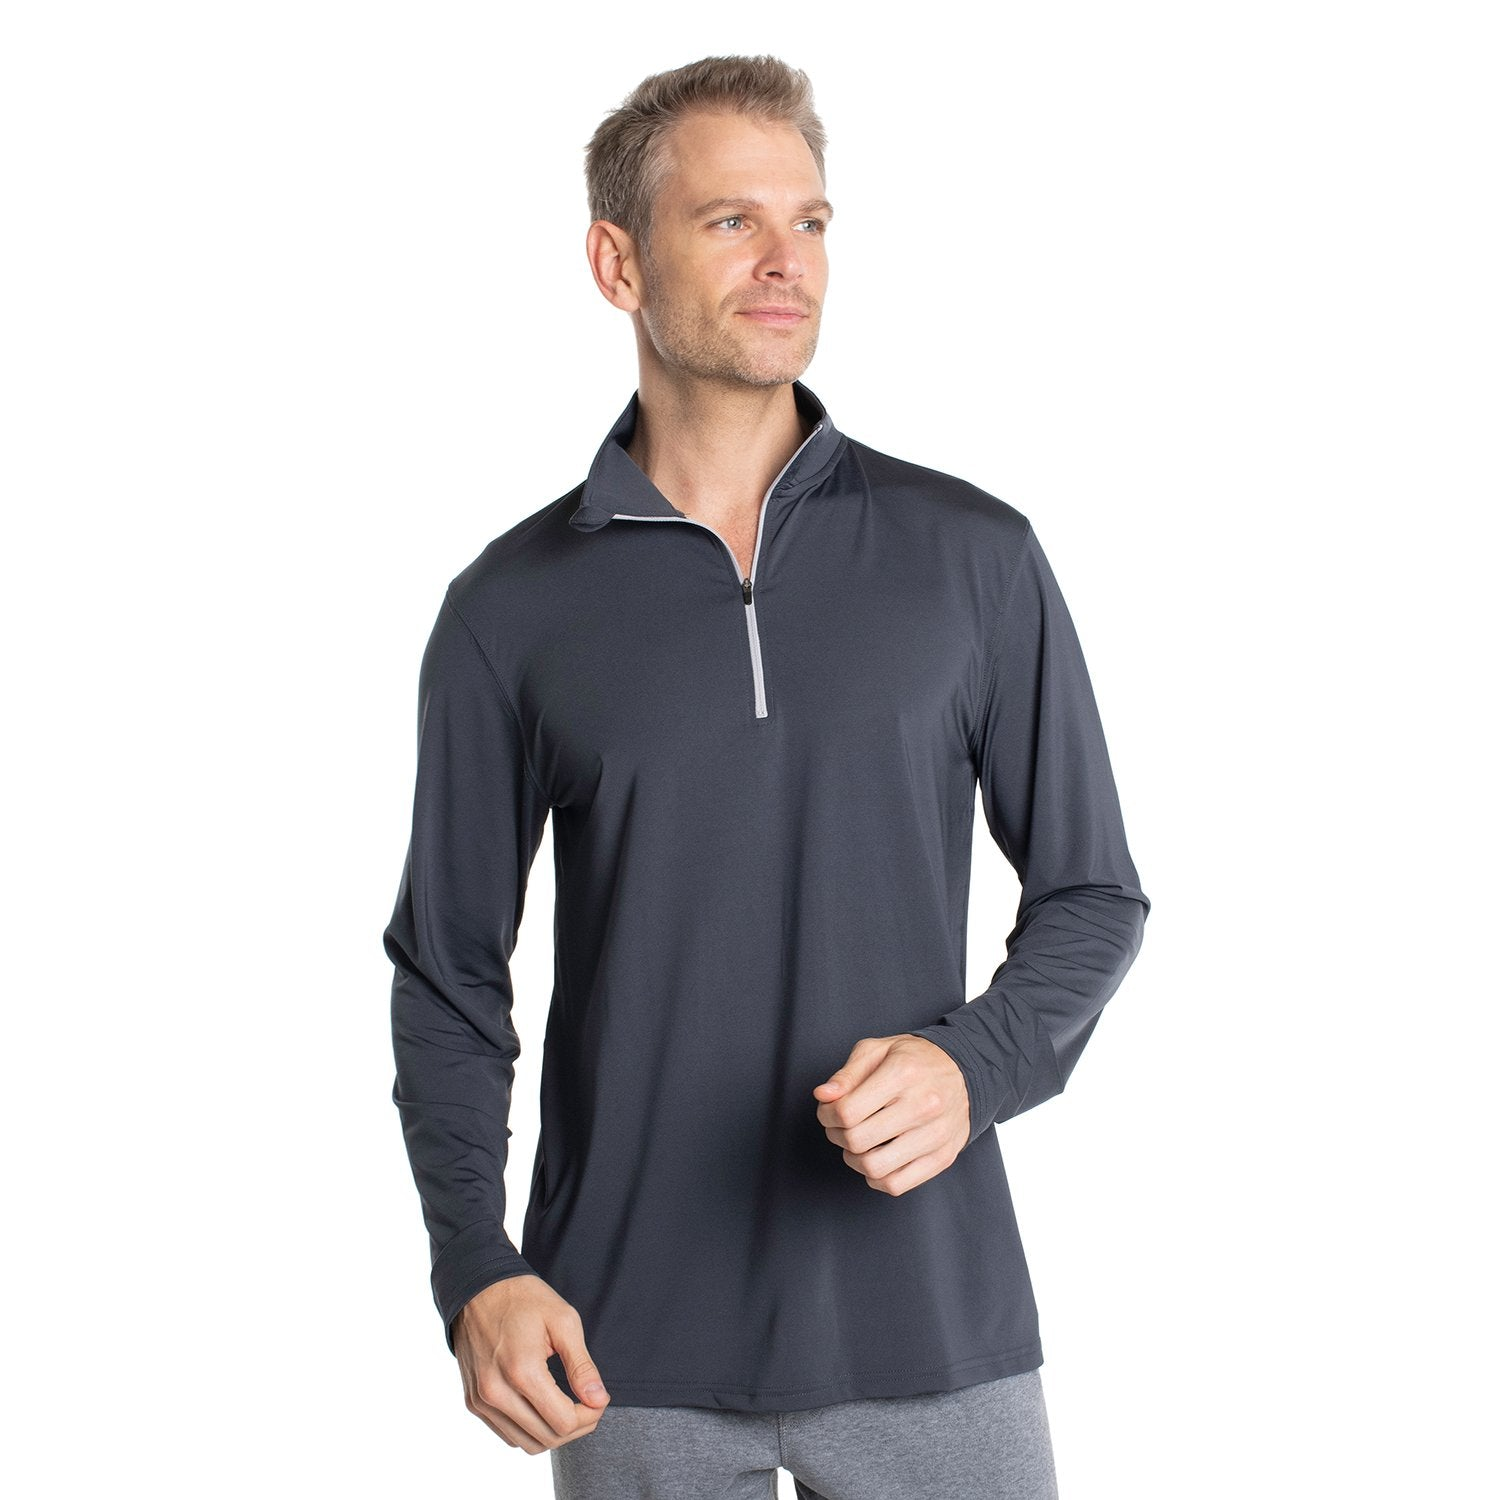 Z730SL Lightweight Quarter Zip - Slate Grey